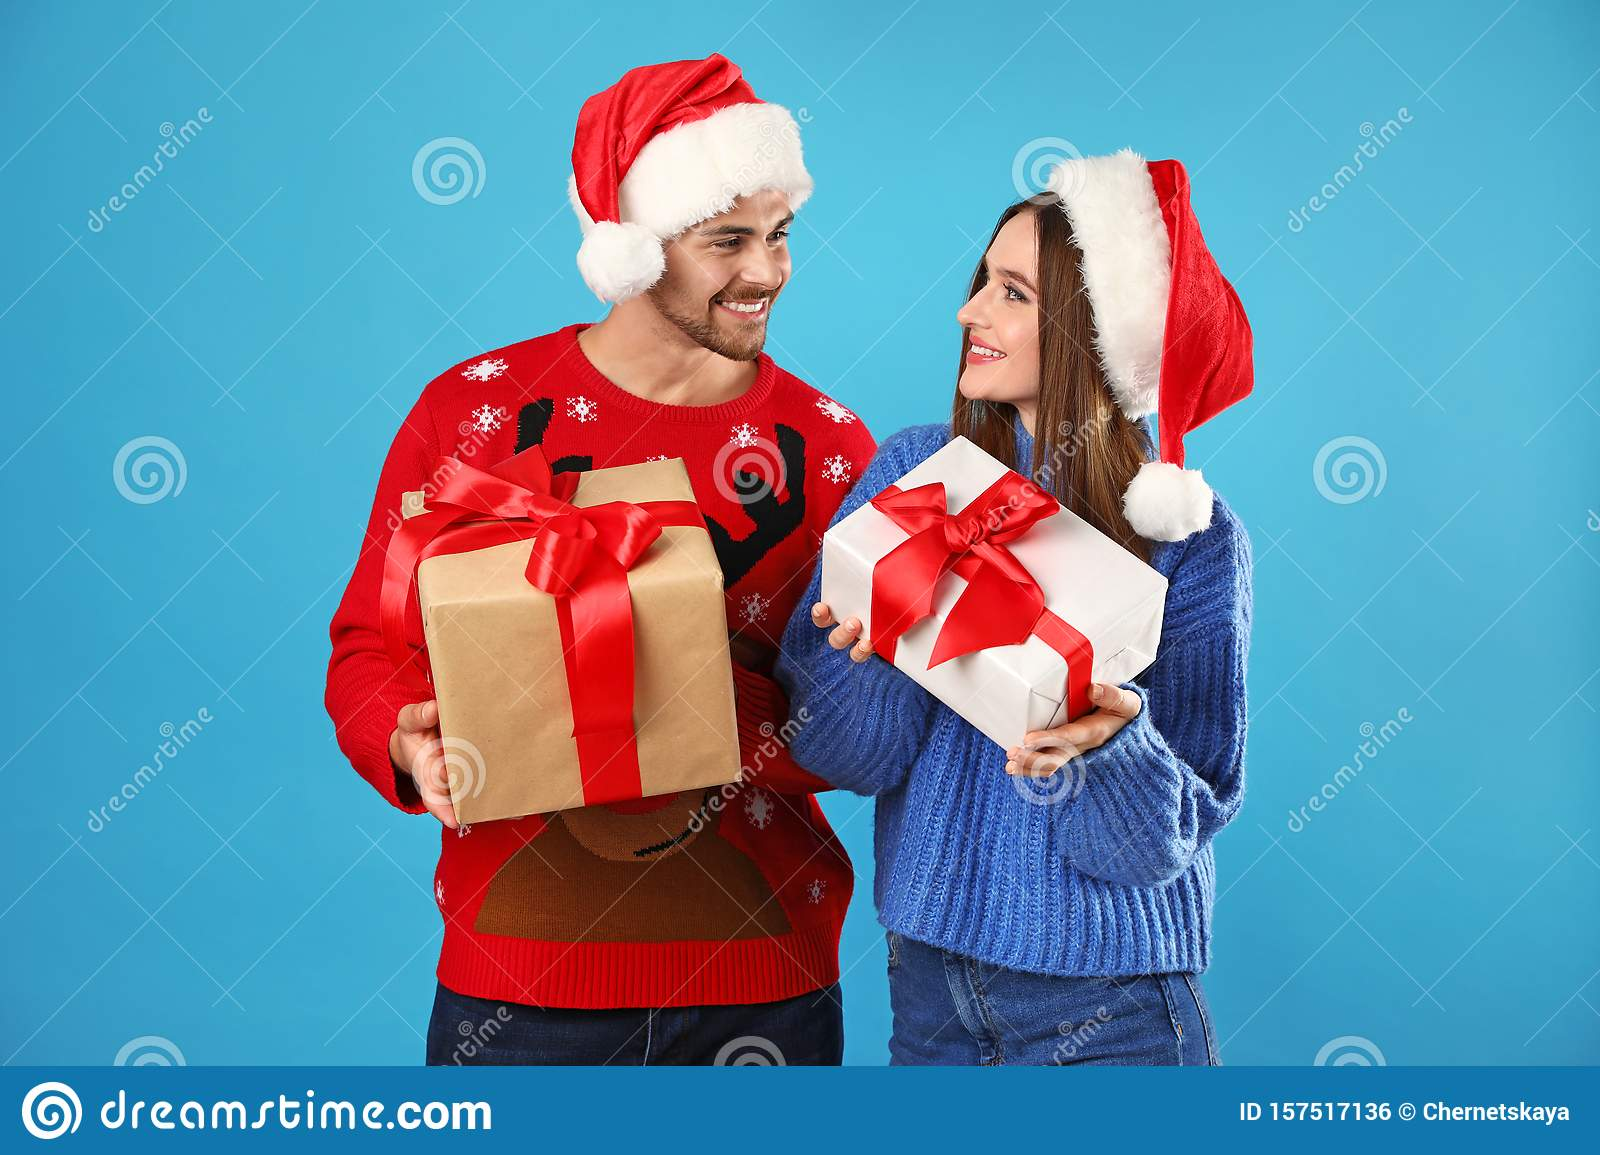 Couple in Christmas sweaters with Santa hats and gift boxes